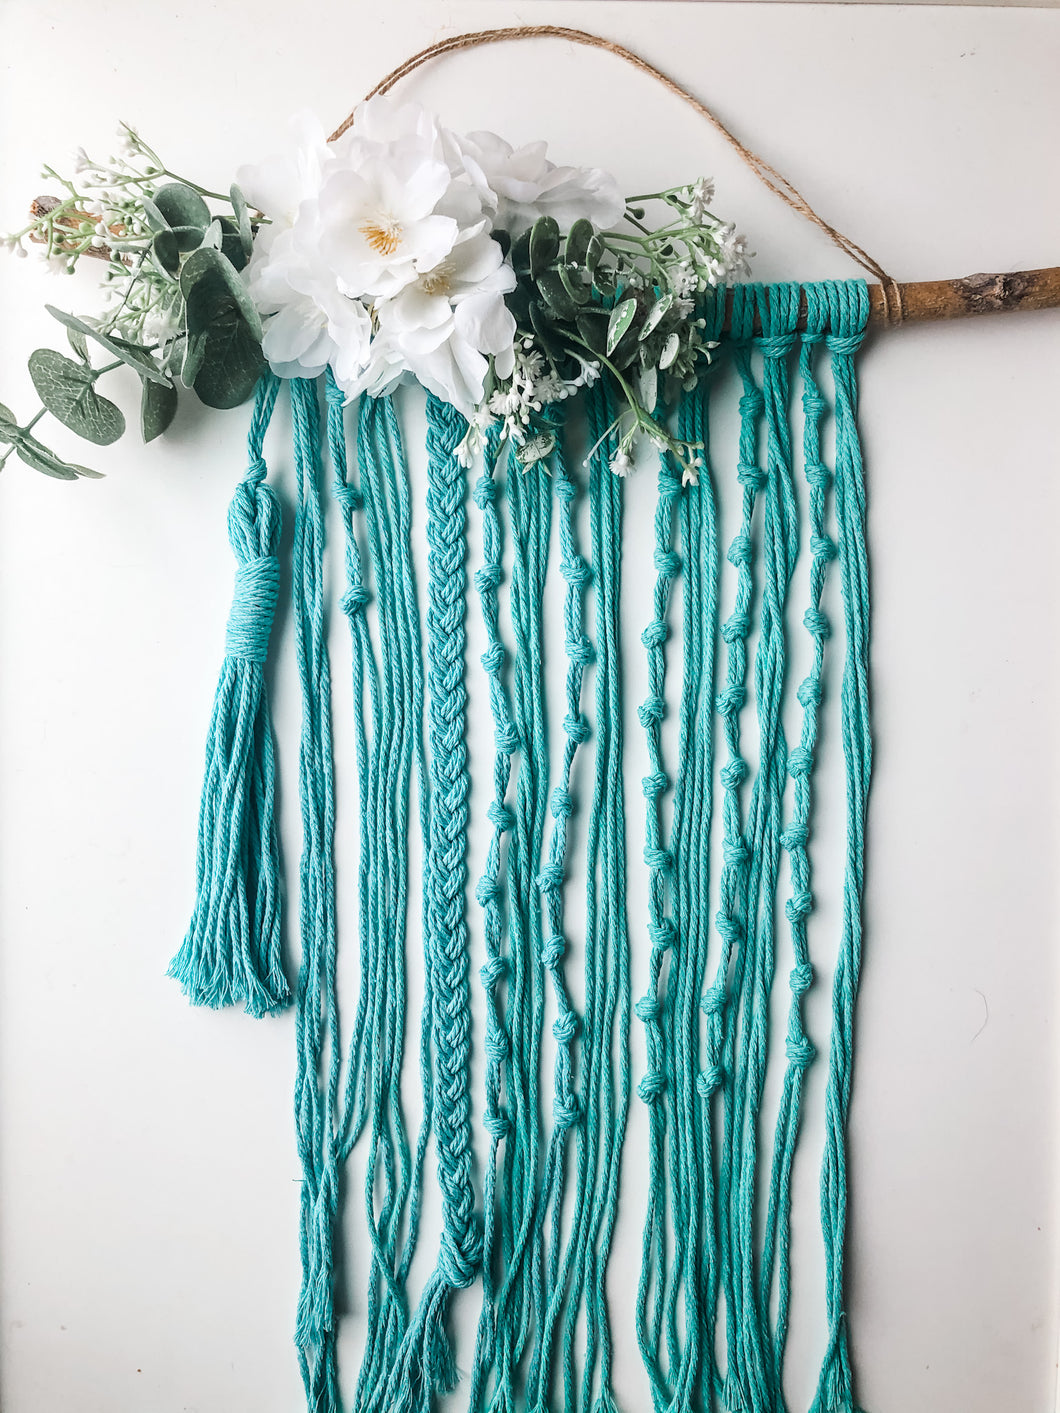 Special Edition, Teal Macrame Wall Rosary